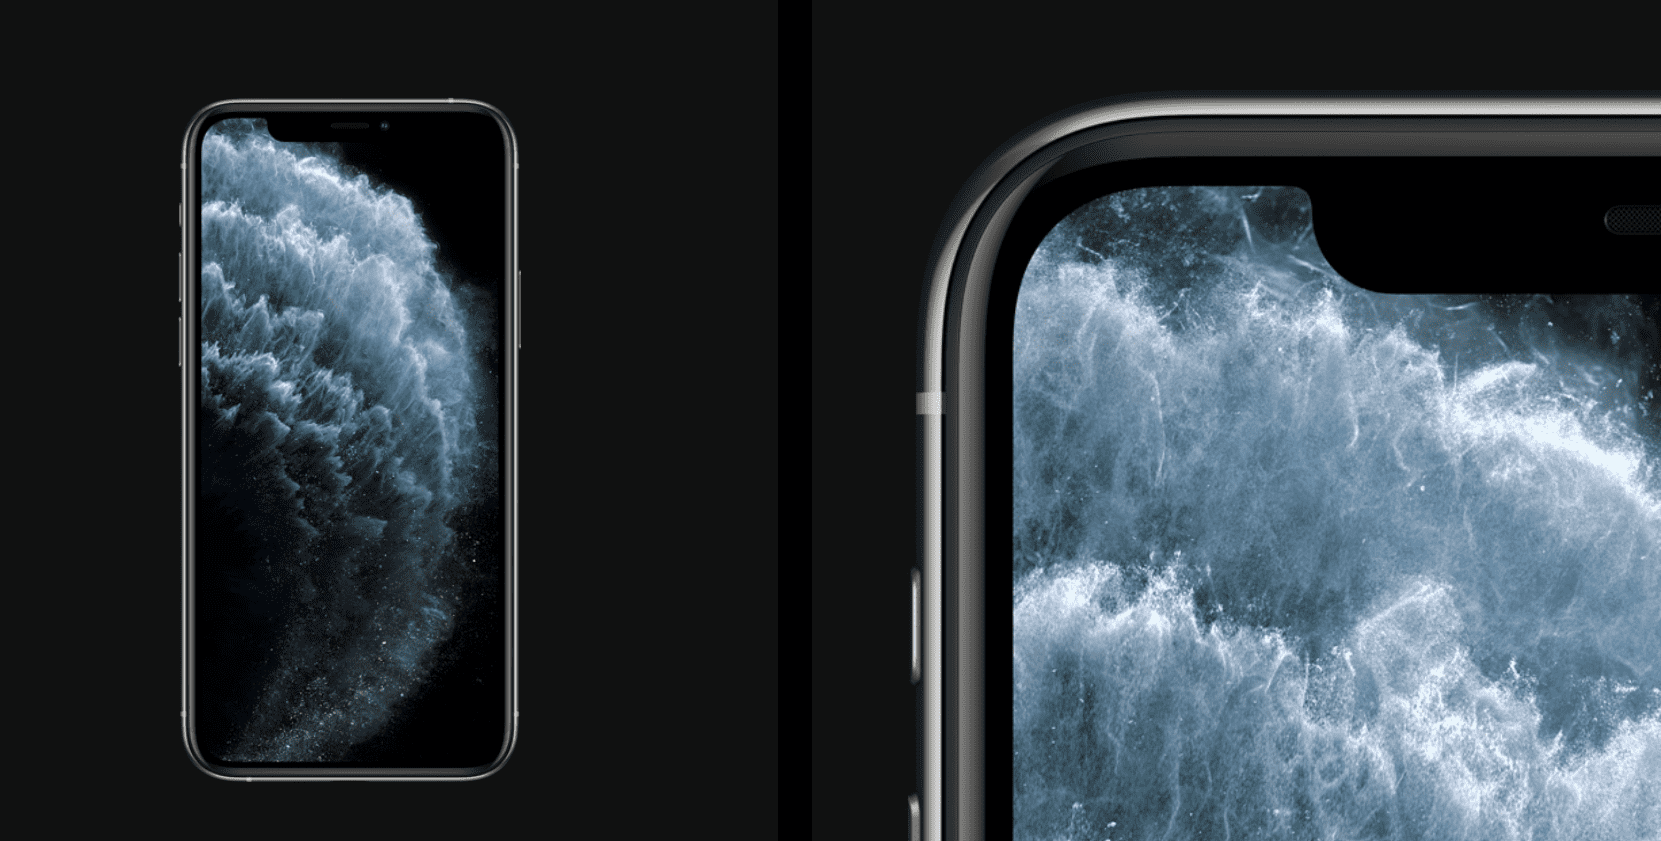 Iphone 11 Pro Display Img 1